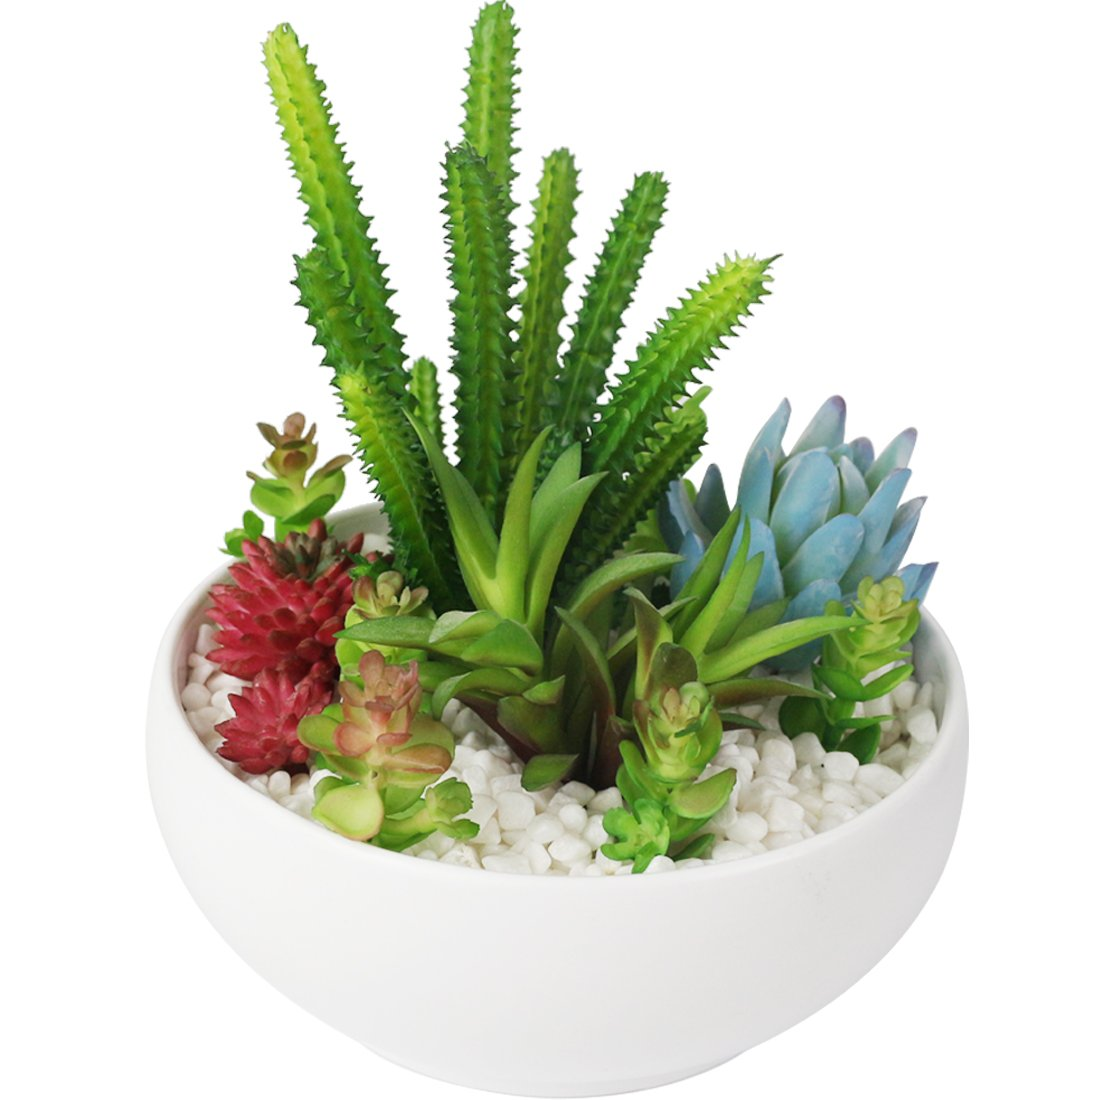 Myartte Colorful Artificial Succulent Plants Collection with White Resin Bowl for Home Decor/Office Decoration by Myartte